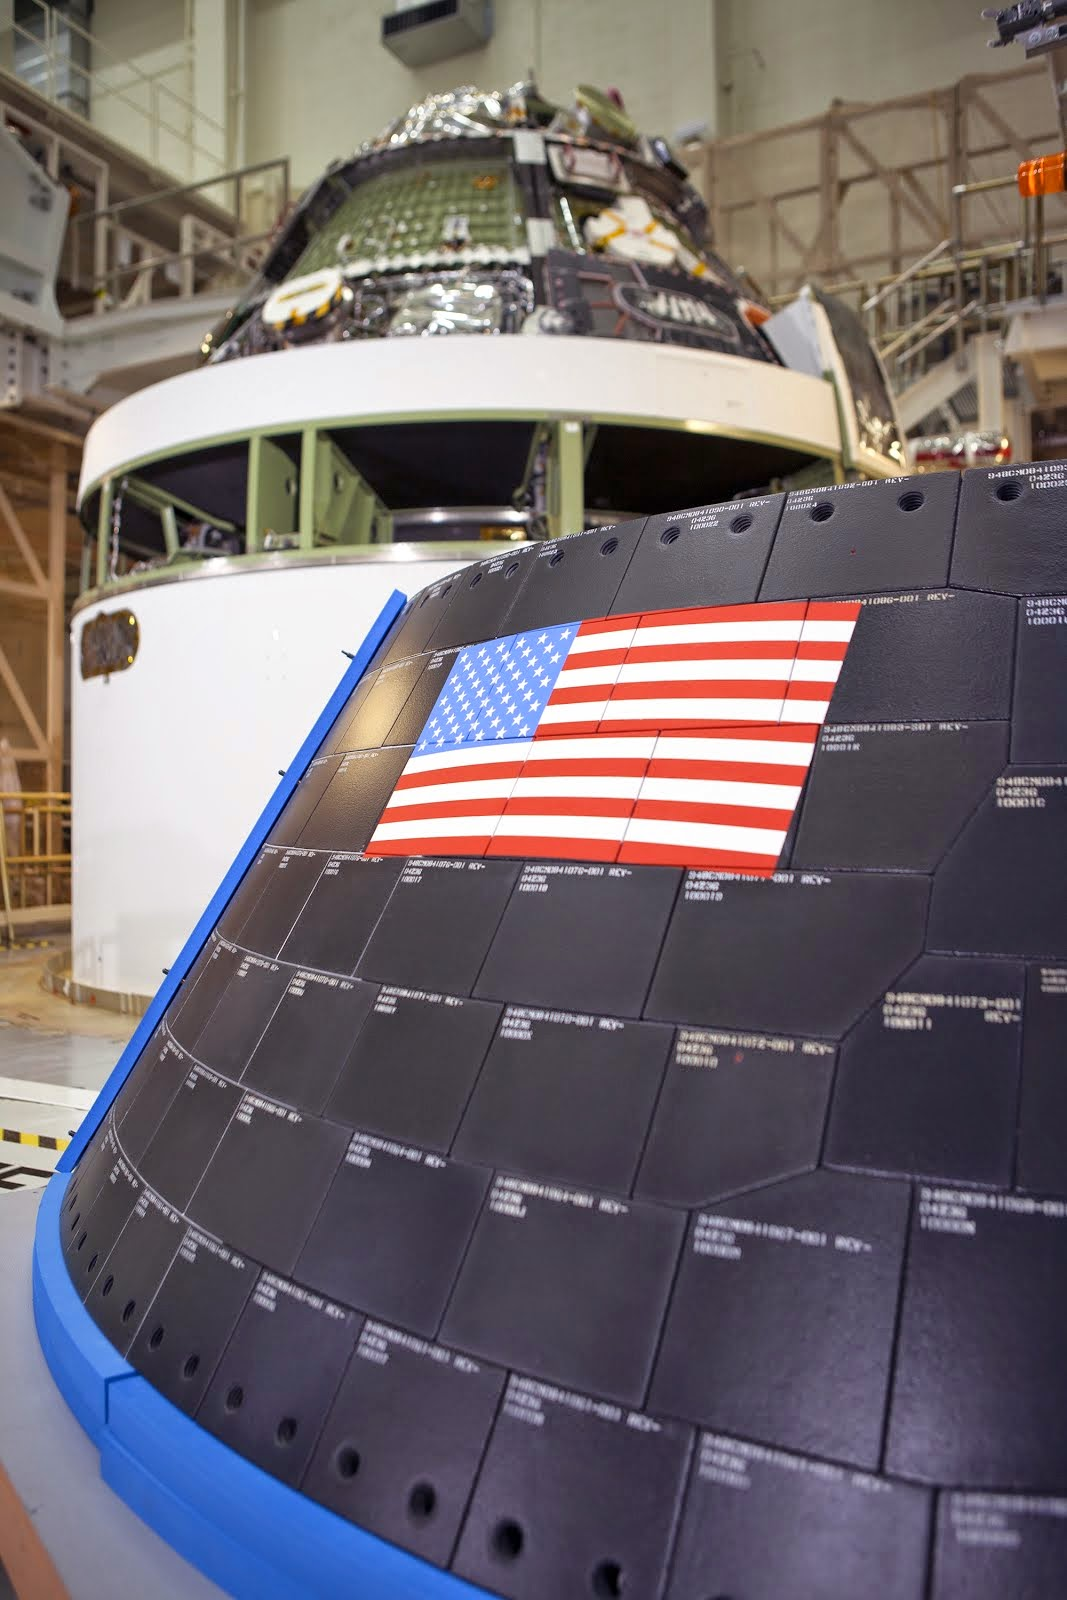 ORION CREW MODULE AT NEIL ARMSTRONG BUILDING